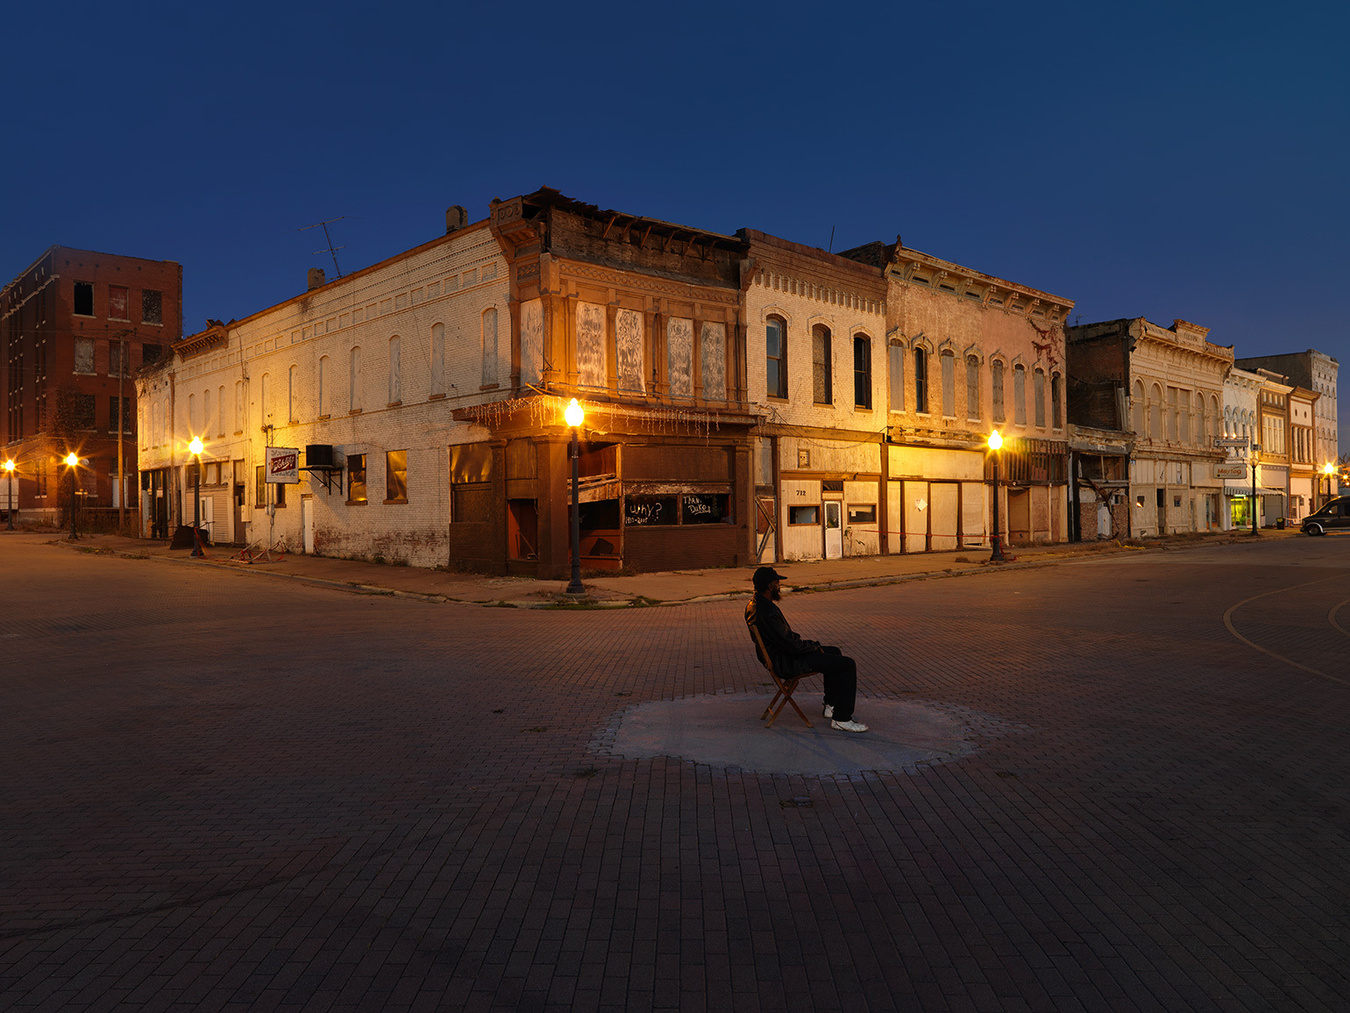 Willie on Commercial Avenue & Eighth Street, Cairo, IL 2009